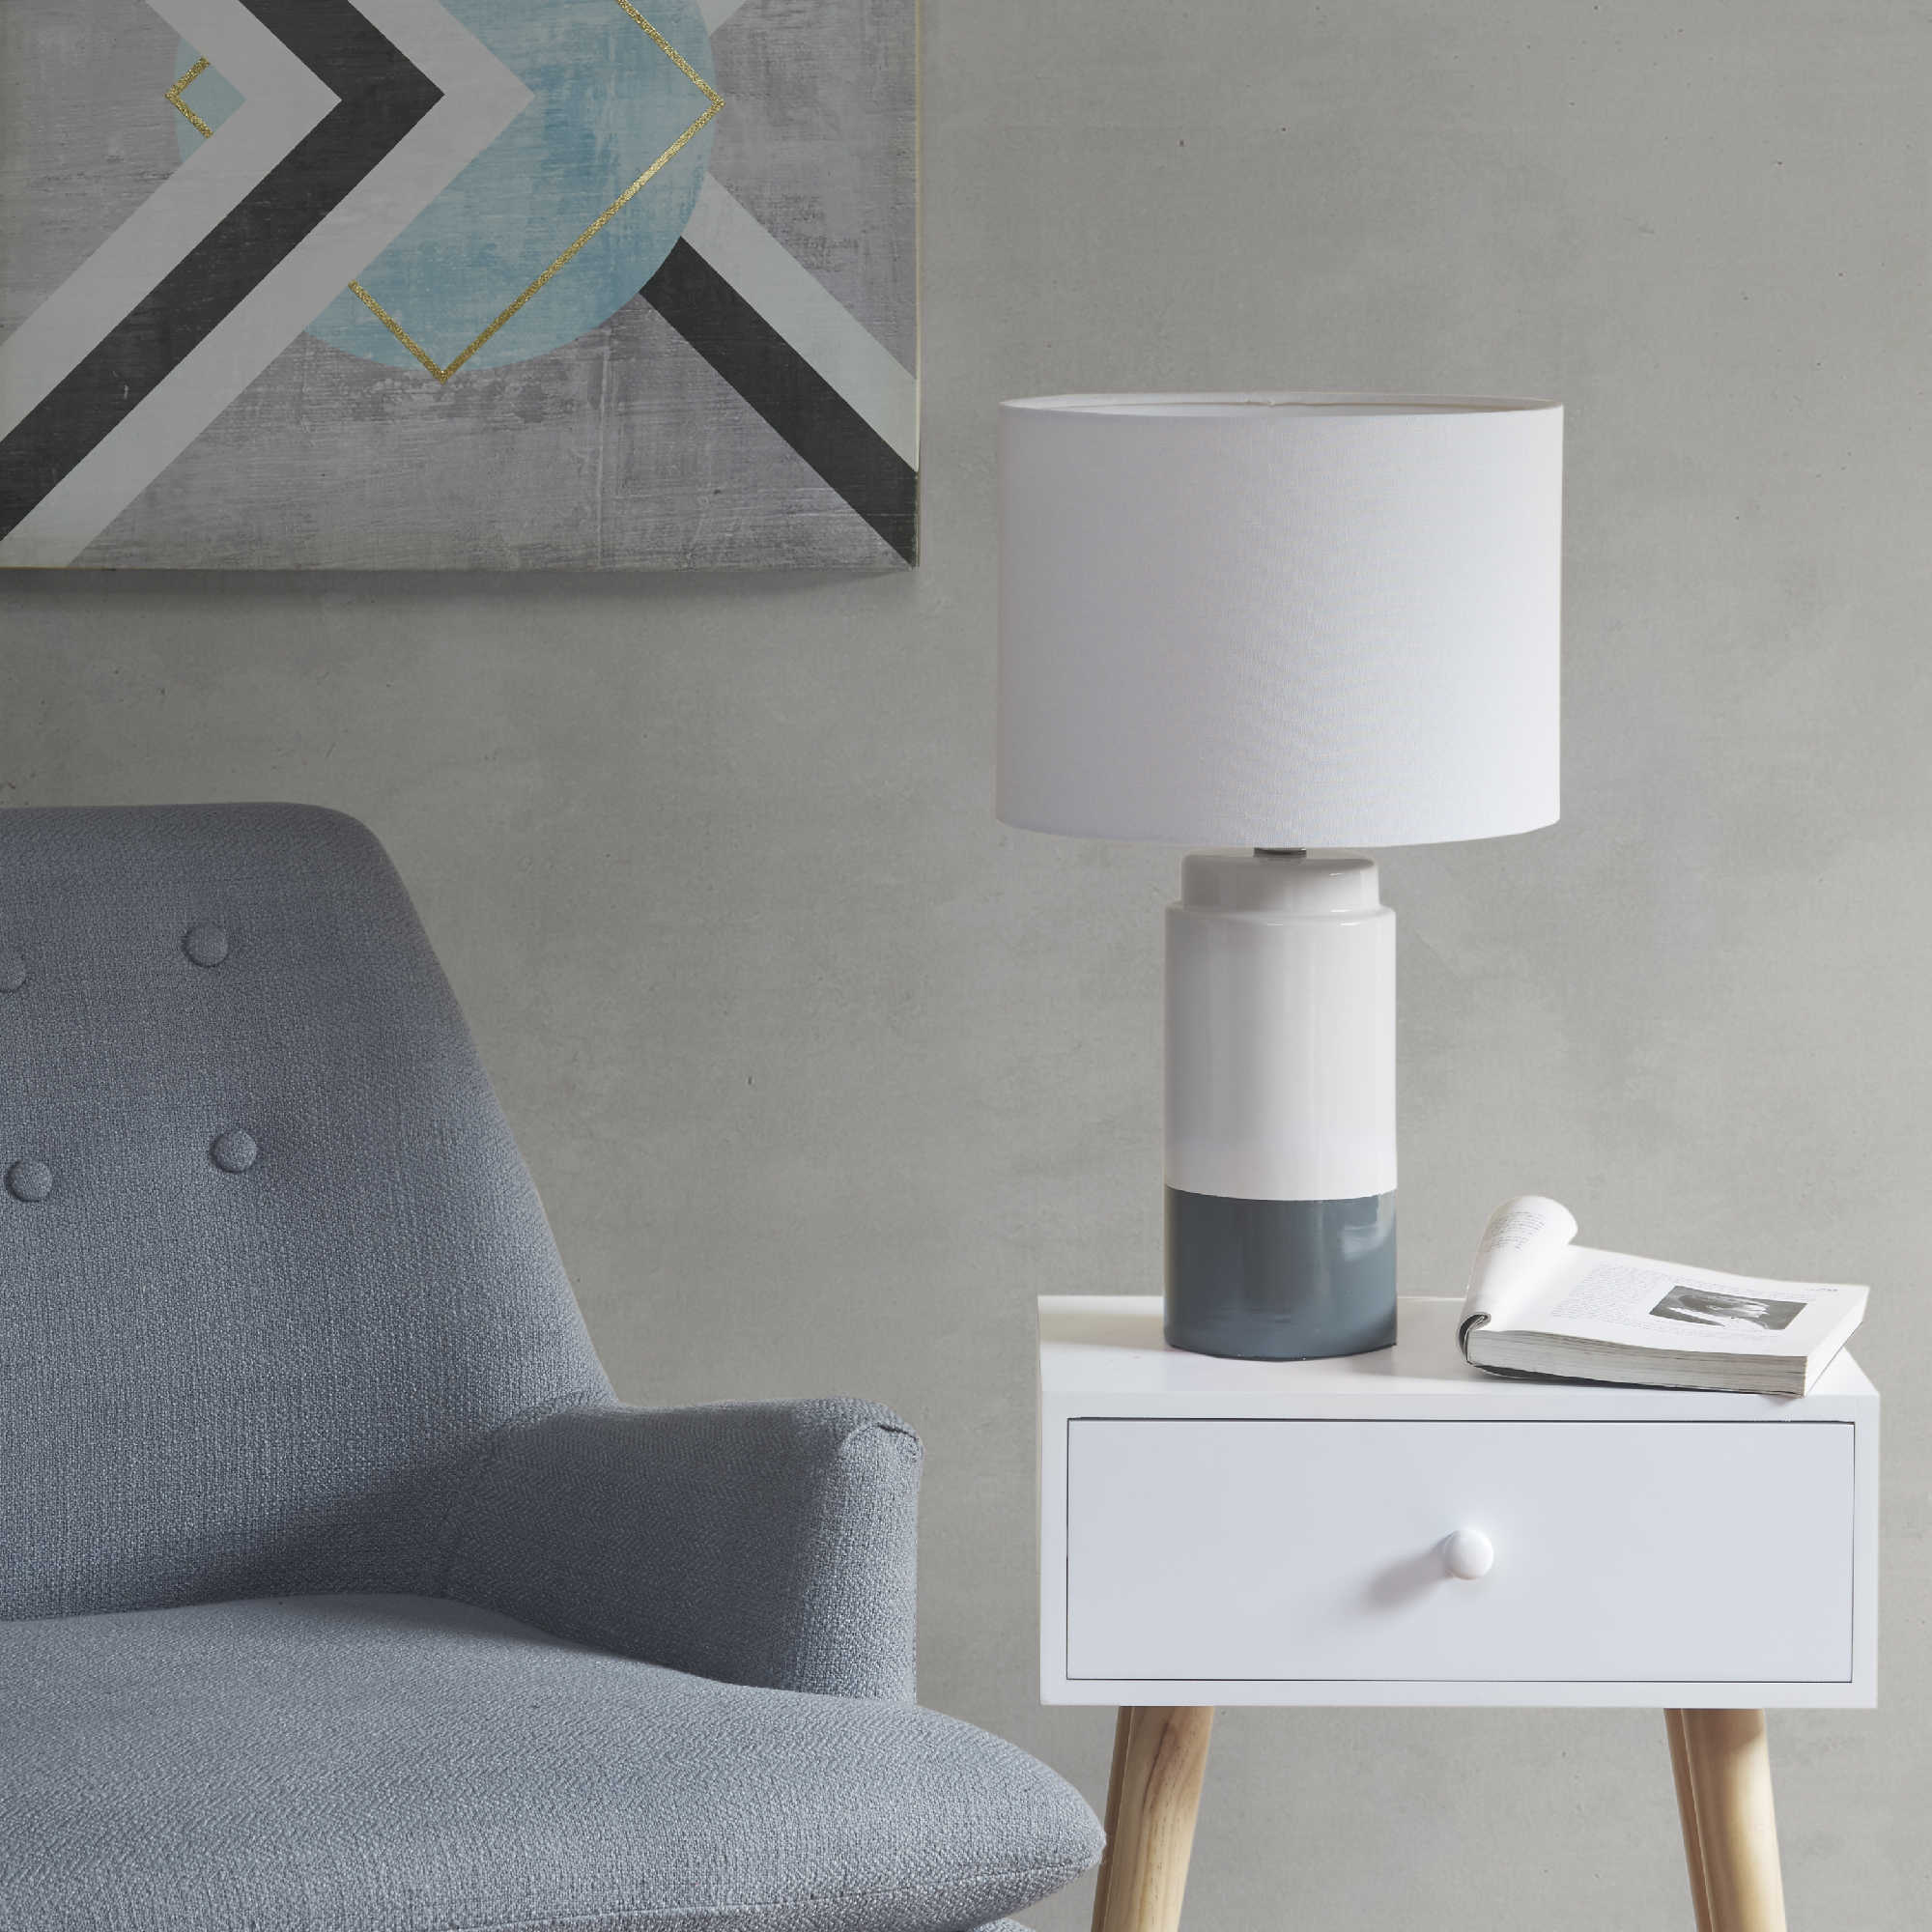 Blue + Gray Table Lamp - I love this two-toned lamp! It's big and beefy, which is also a plus in my book. If you want to snag it, you can get it HERE.